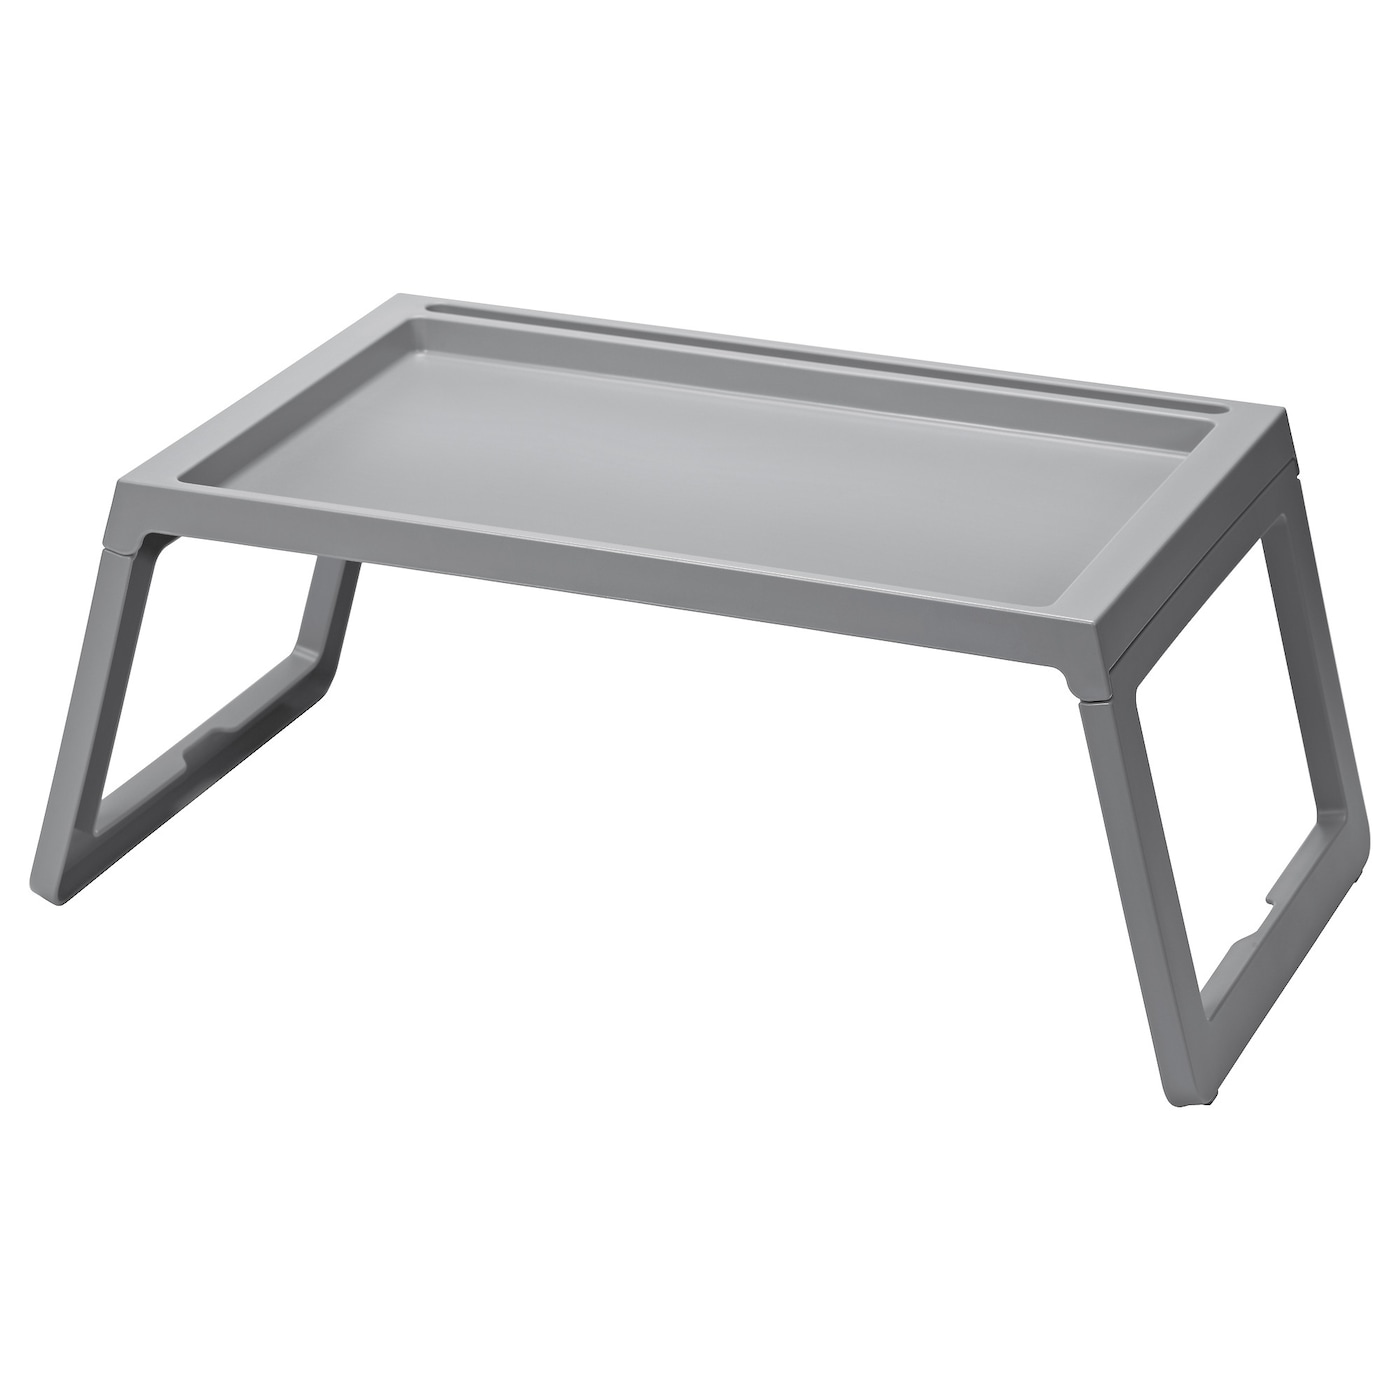 IKEA KLIPSK bed tray Foldable legs make the bed tray easy to store without taking up extra space.